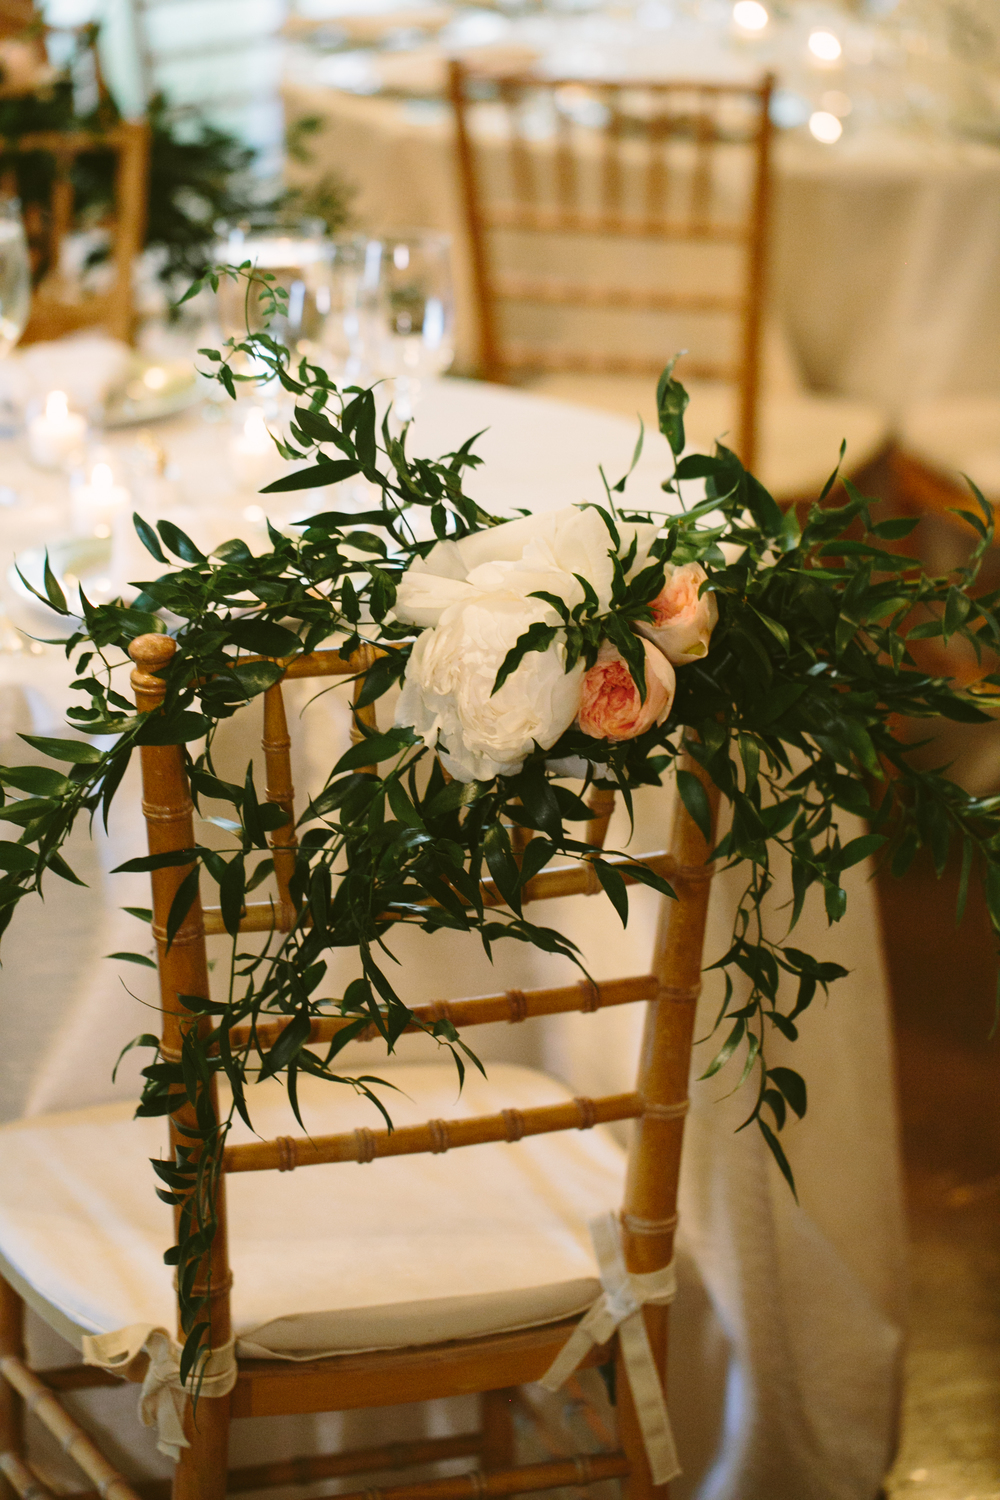 B Floral and Event Design | Full Service Floral and Event Design Company Servicing Maryland, Washington DC, Virginia and Beyond | Maria Vicencio Photography